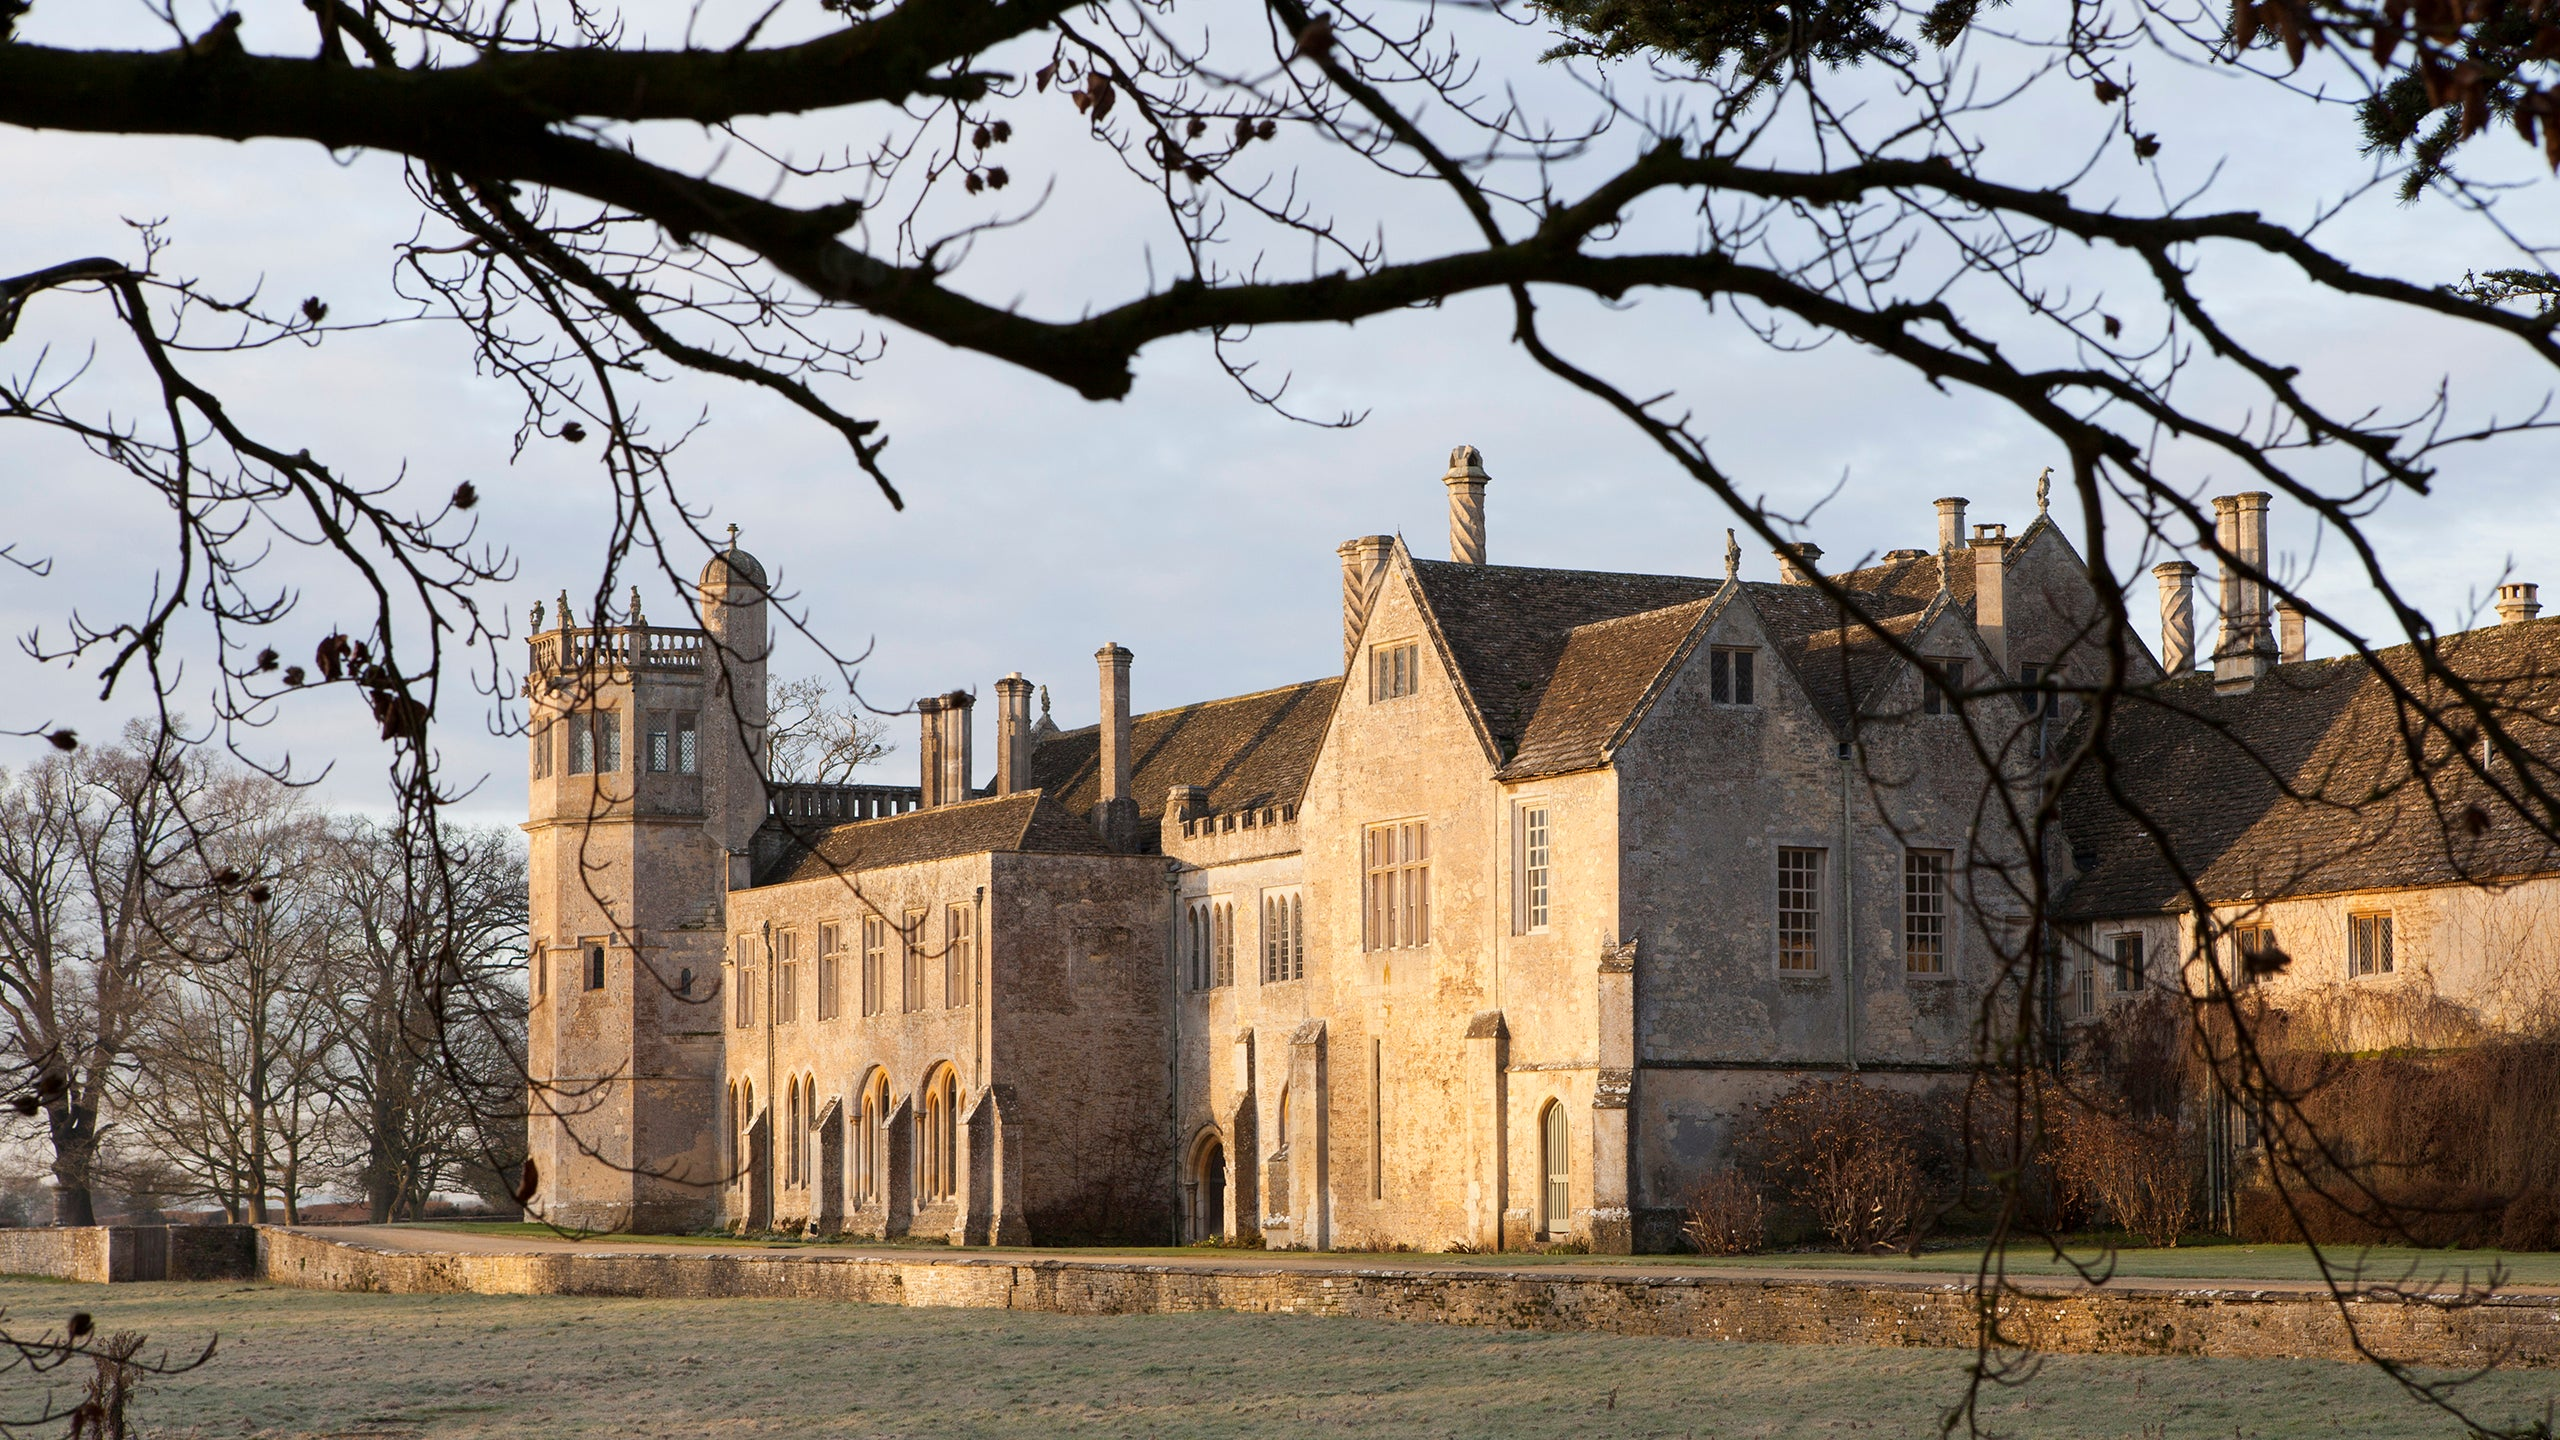 A frosty morning in late winter at Lacock Abbey, Wiltshire